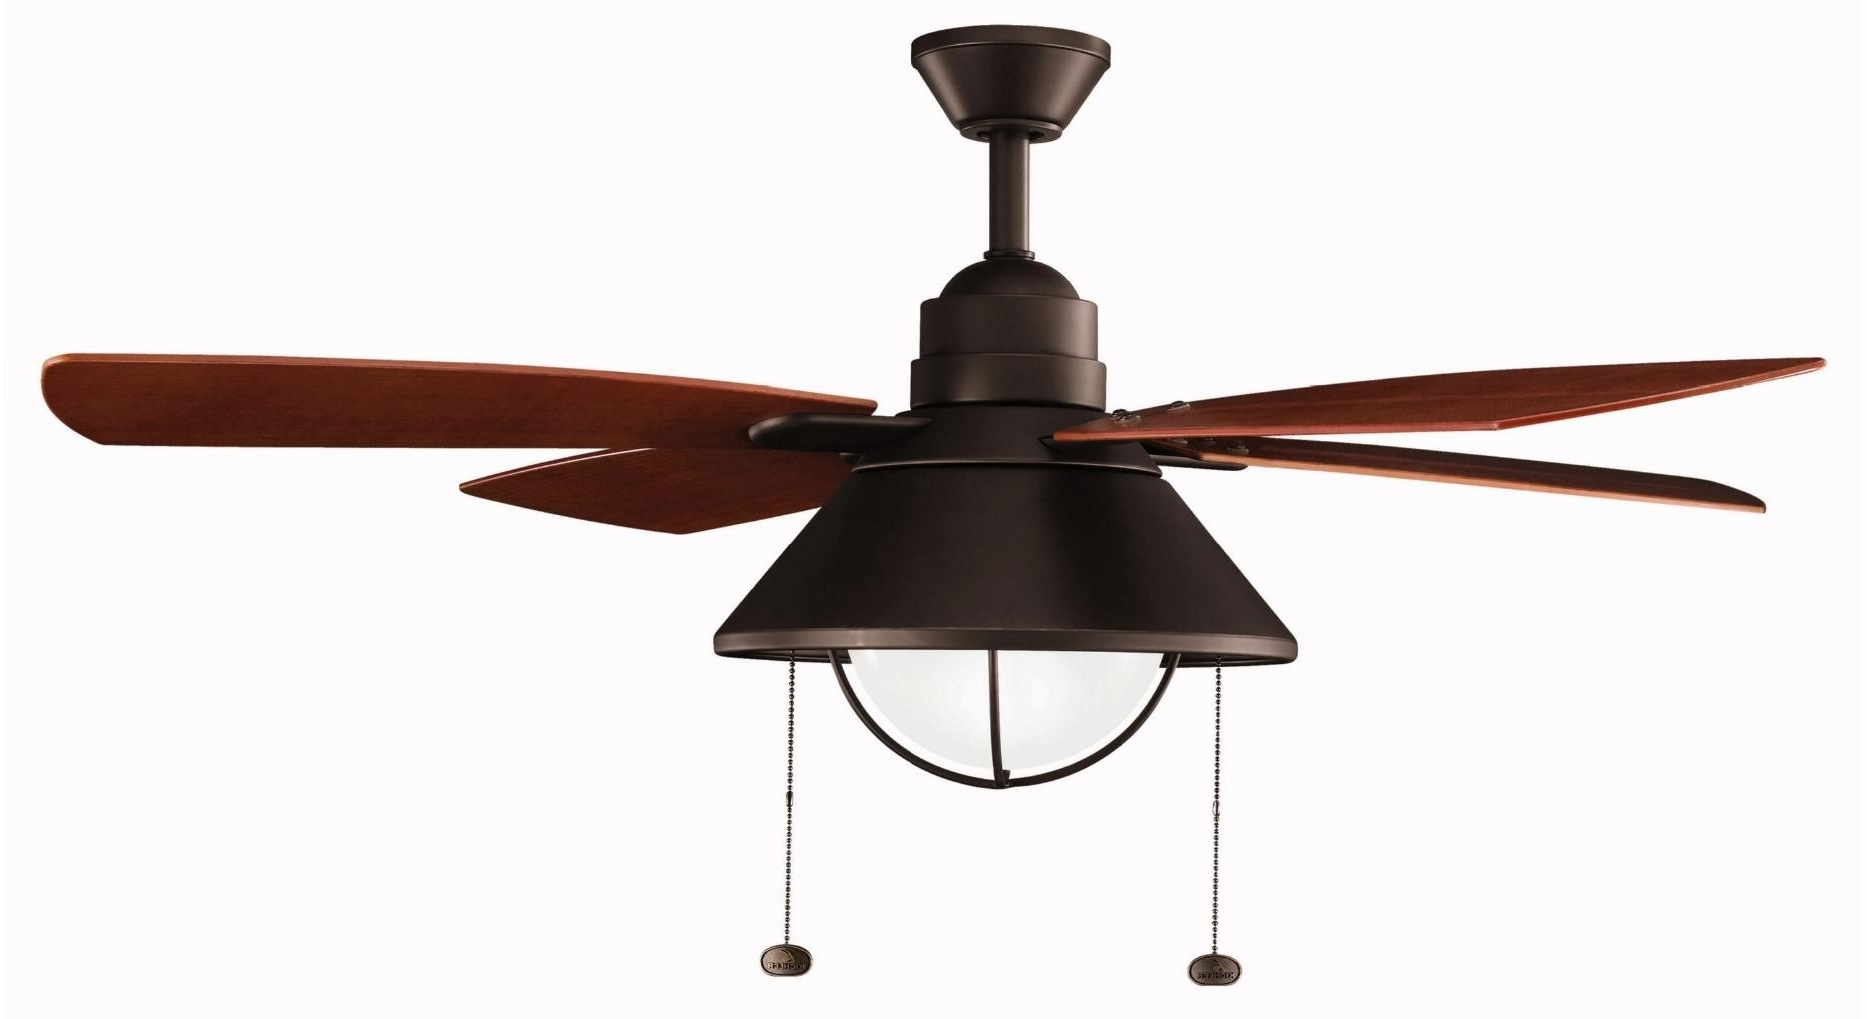 Unique Outdoor Ceiling Fans With Lights Within Most Recently Released Ceiling Fans Door Outdoor Ceiling Fans With Light Trend In Tray (View 19 of 20)